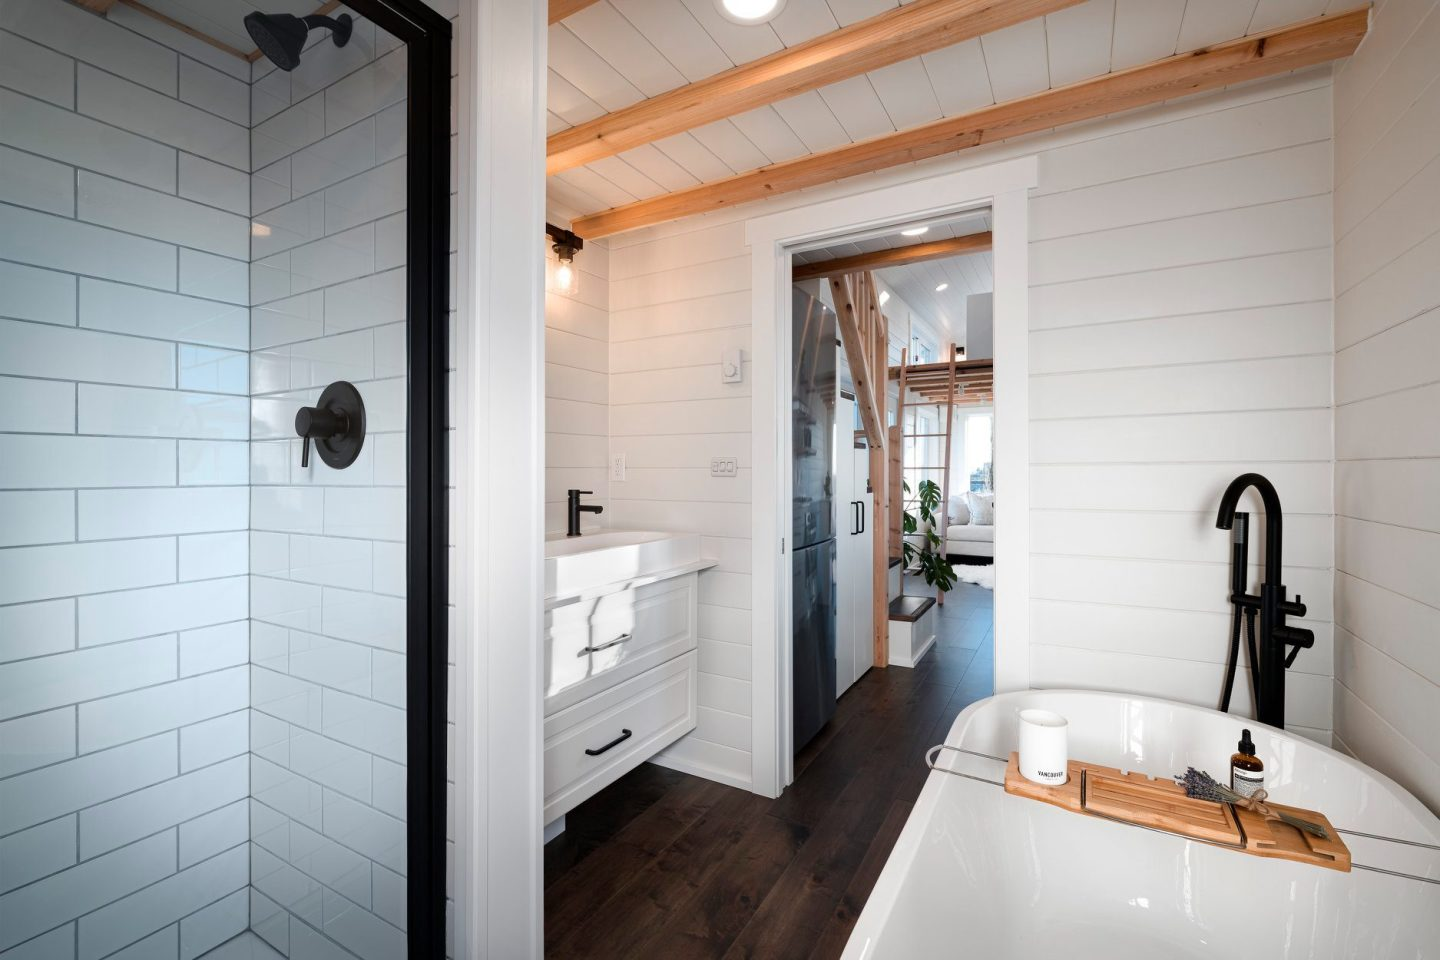 The 34ft Eco-Friendly Tiny House RV's bathroom includes a shower, bathtub, sink, and composting toilet